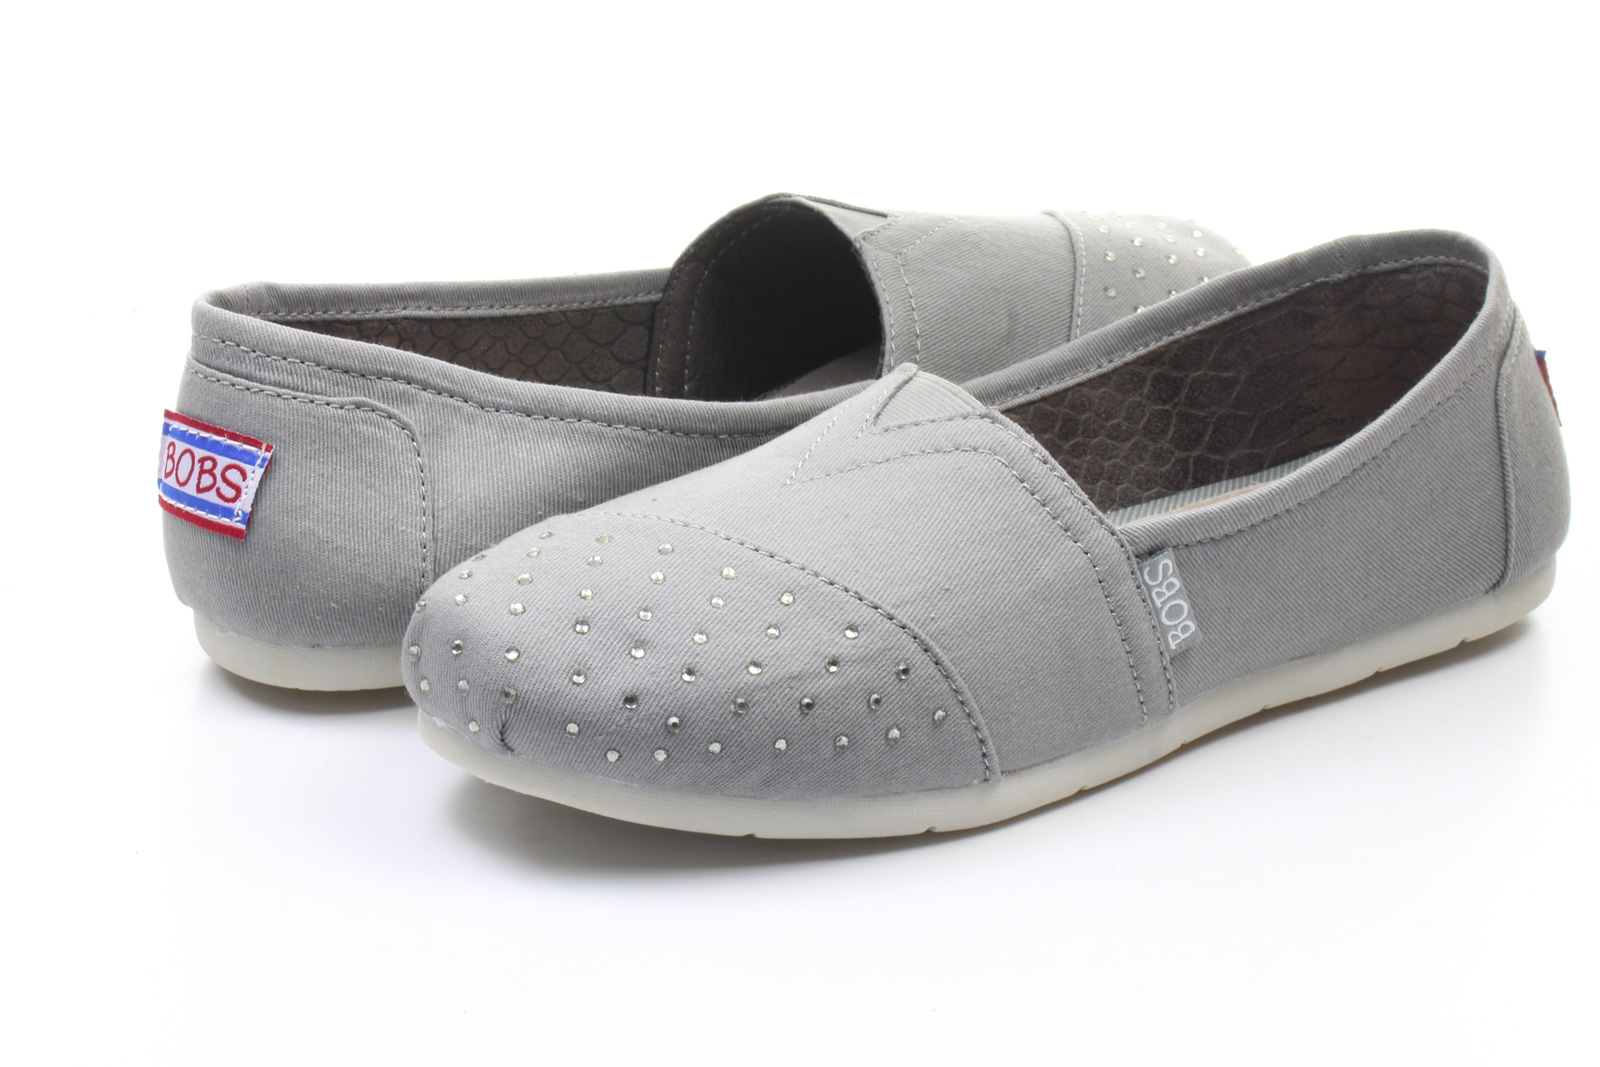 Black And White Bobs Shoes